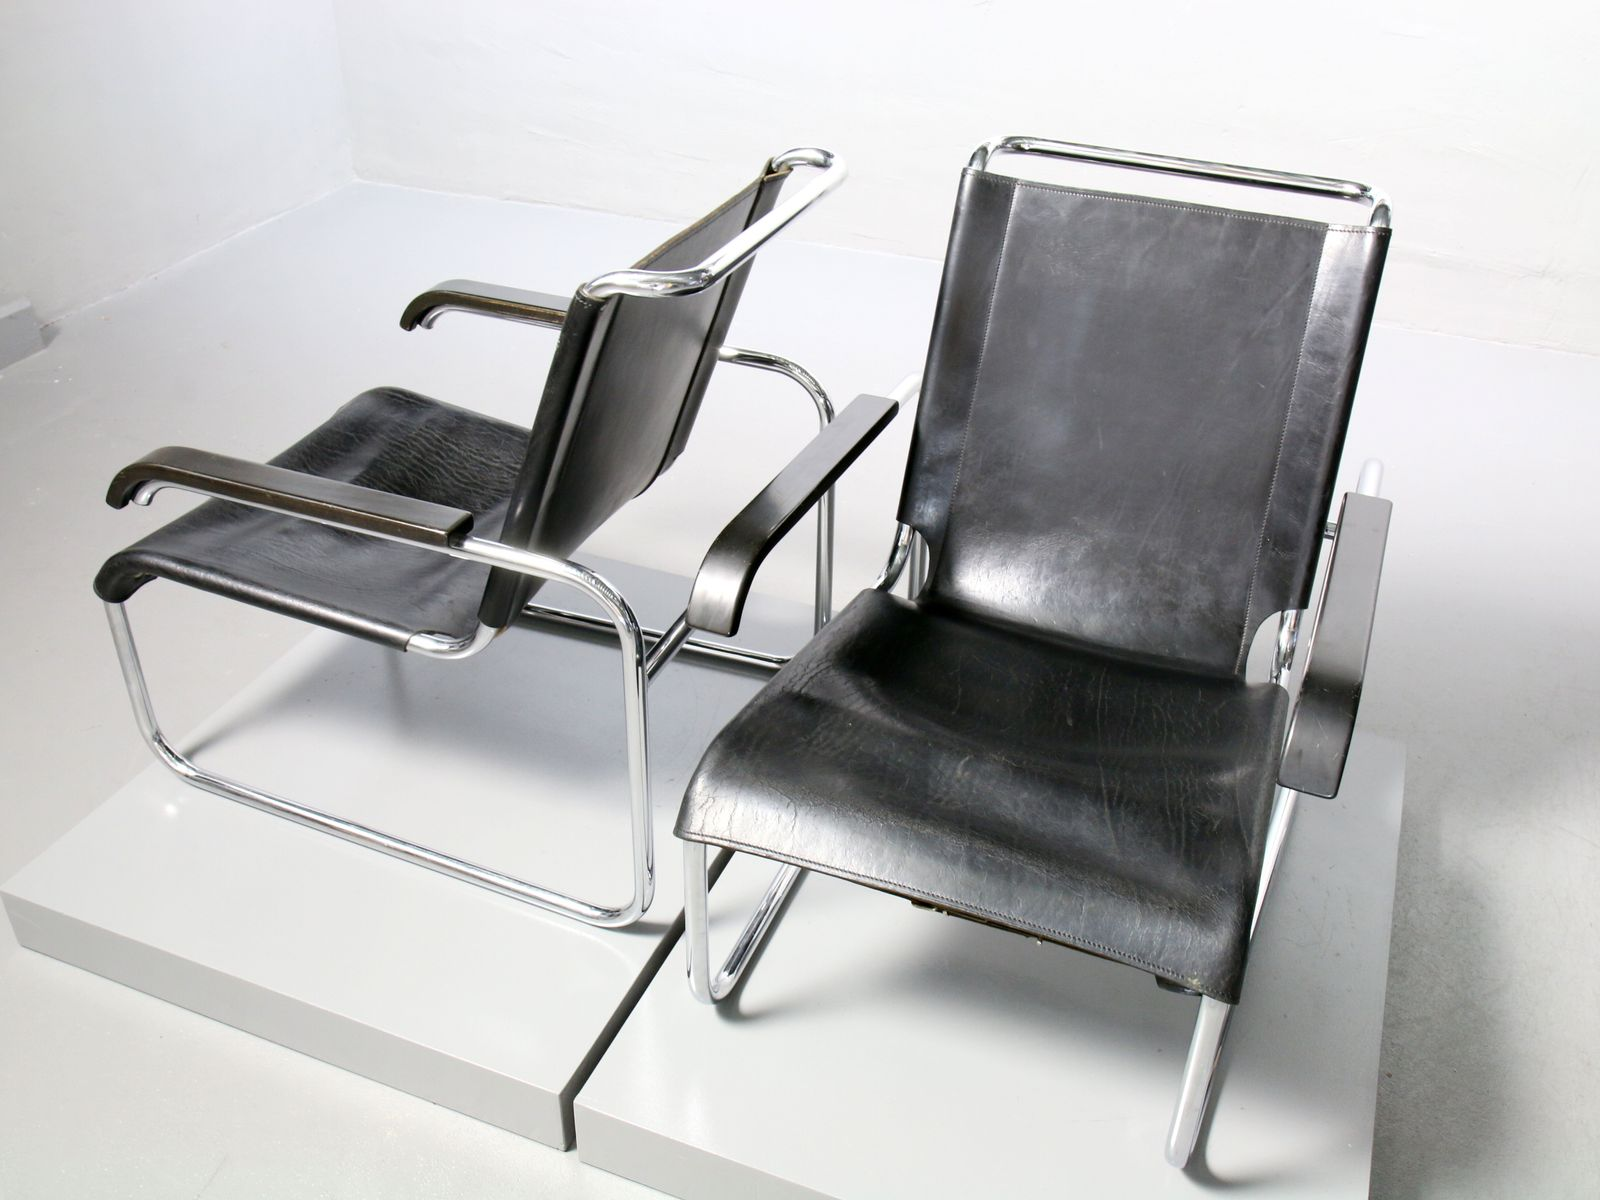 S 35 Armchair in Tubular Steel by Marcel Breuer for Thonet 1970s